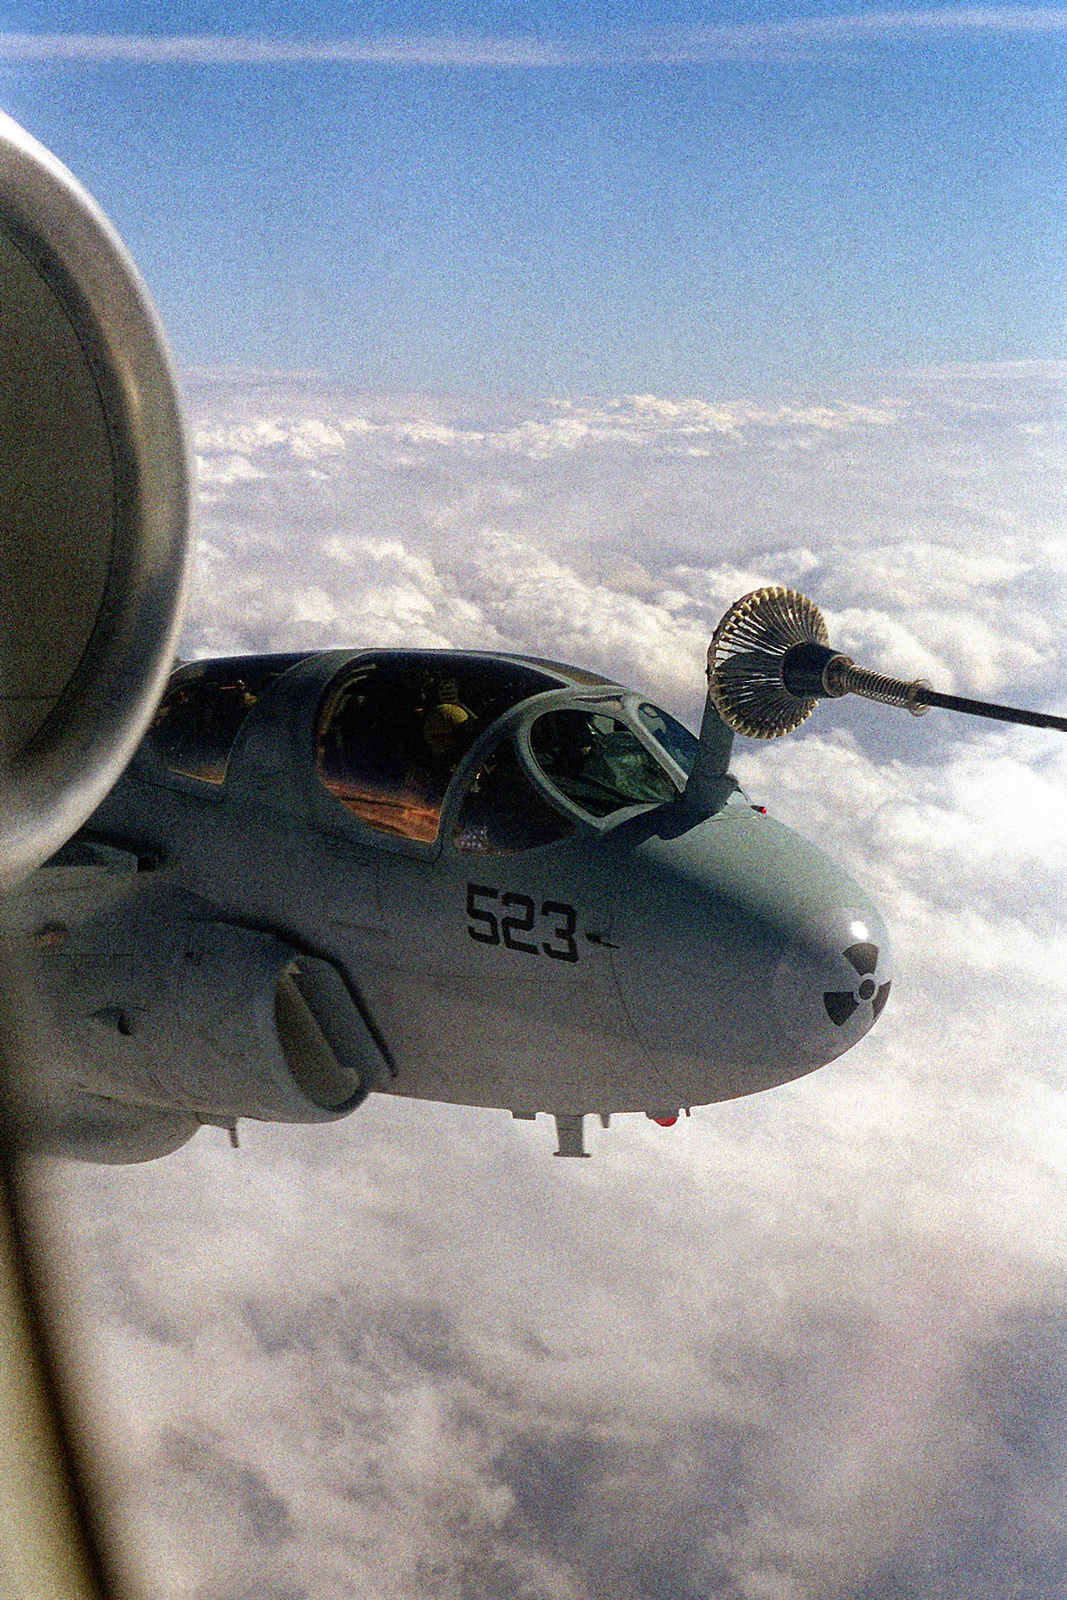 """US Navy A-6E """"Intruder"""" preforms an air refueling from a British Royal Air Force VC-10 Tanker Refueler (Partially seen at left). The aircraft are deployed to the region in support of Operation NORTHERN WATCH"""